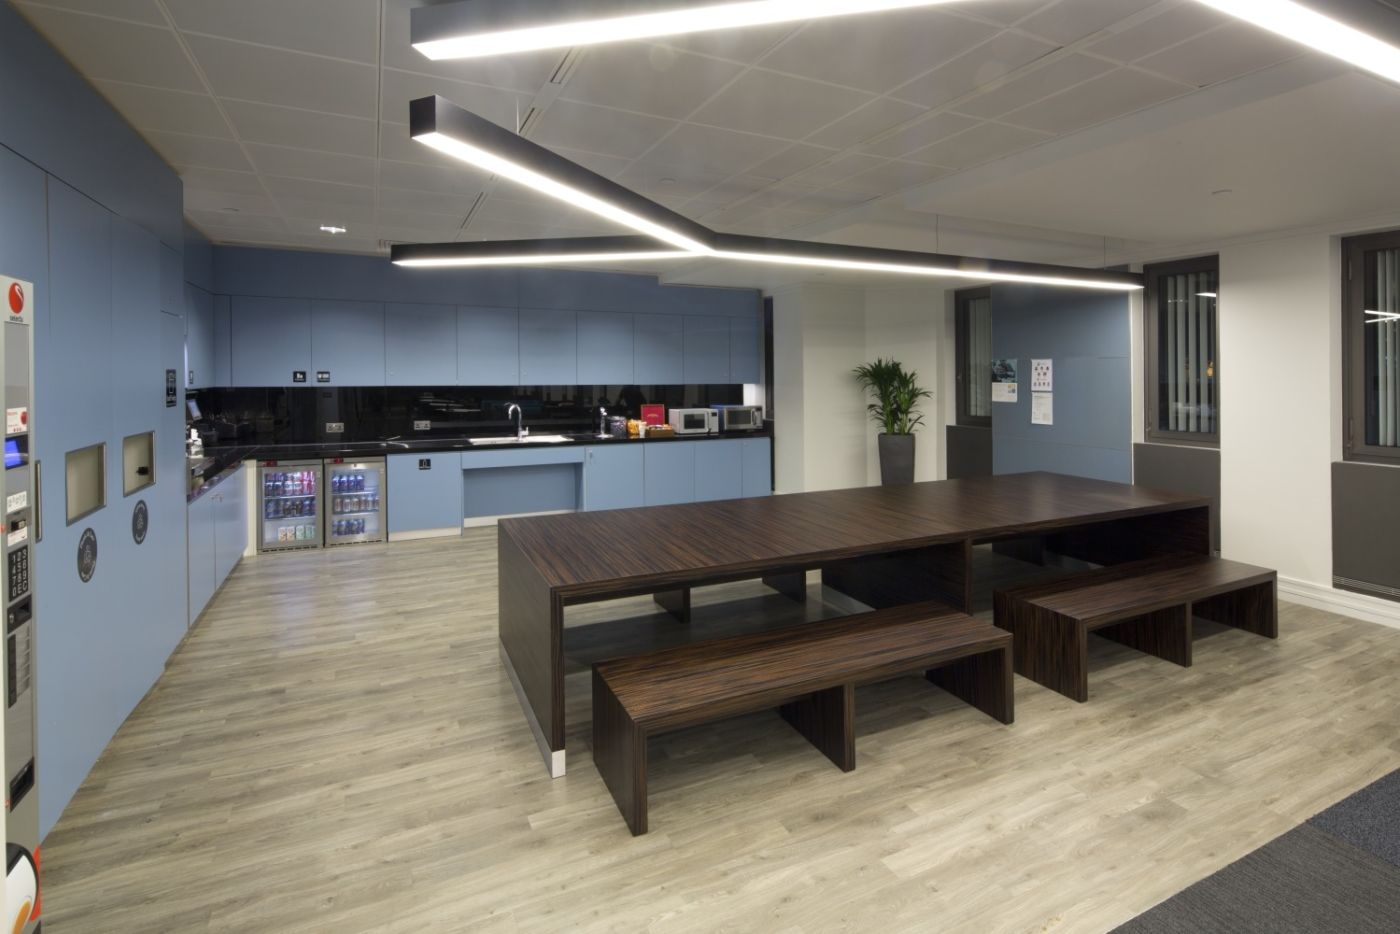 Office kitchen with blue cupboards and communal seating